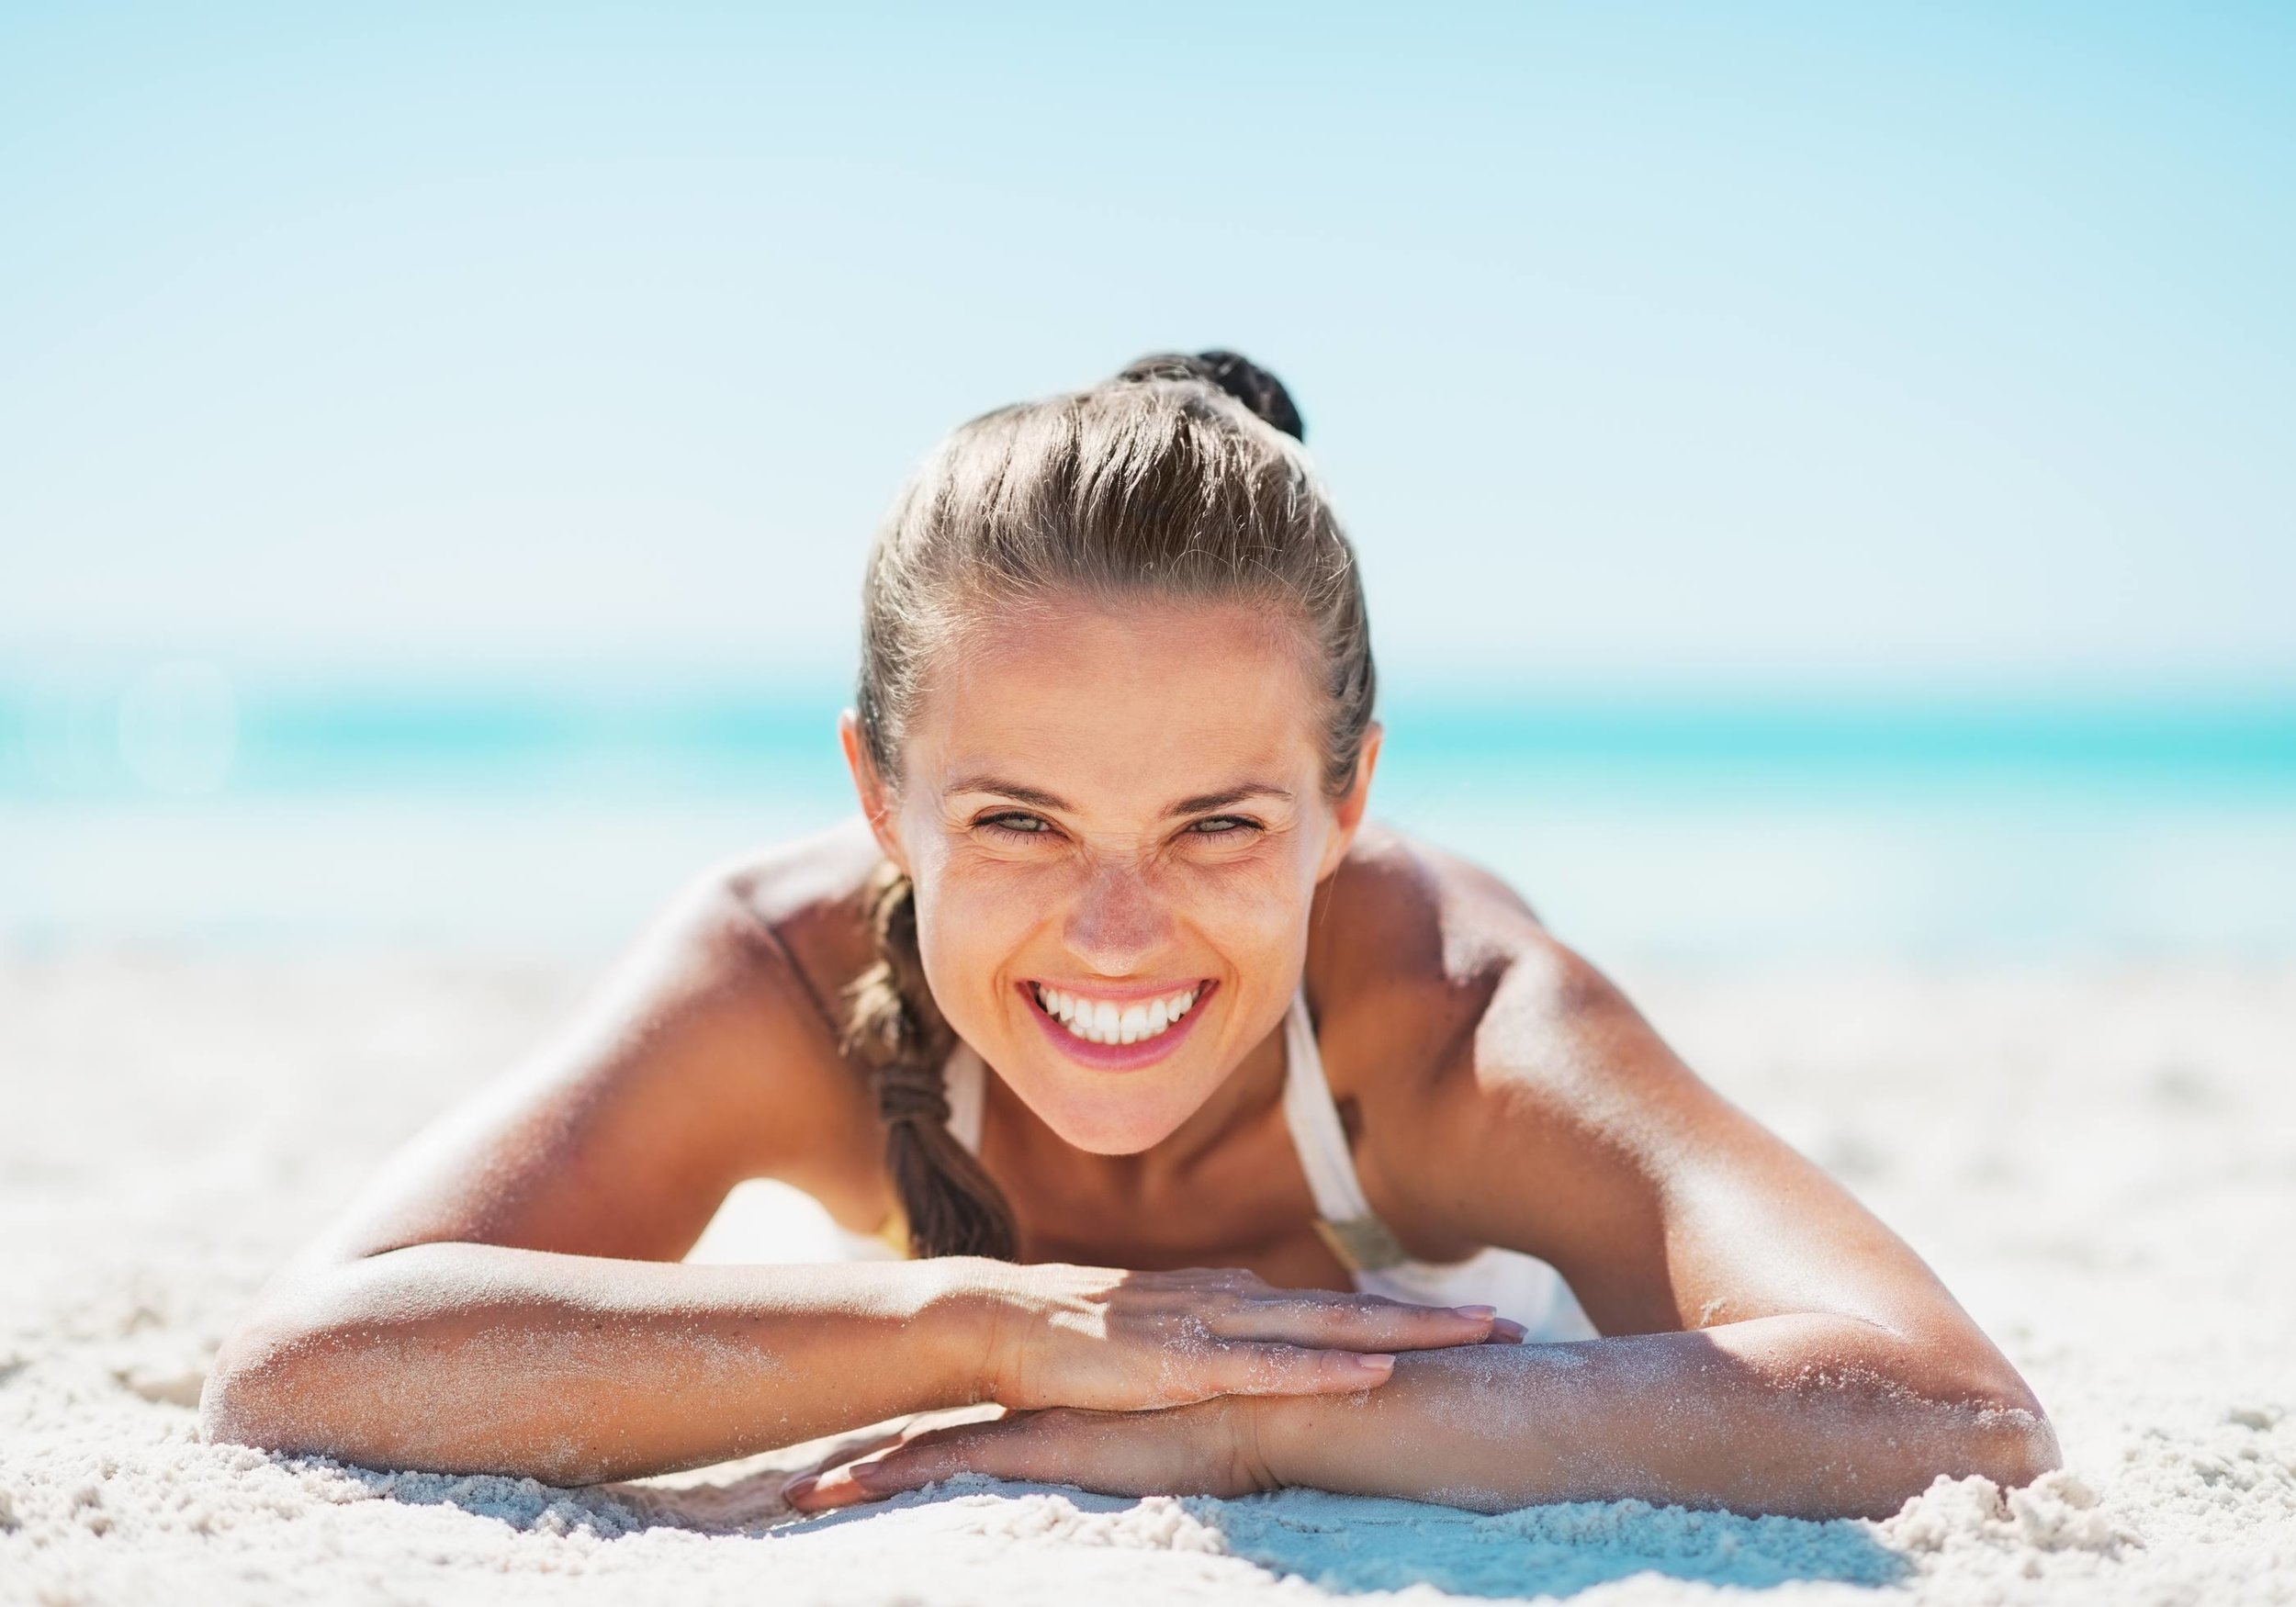 smiling-young-woman-in-sunshine-on-beach.jpg